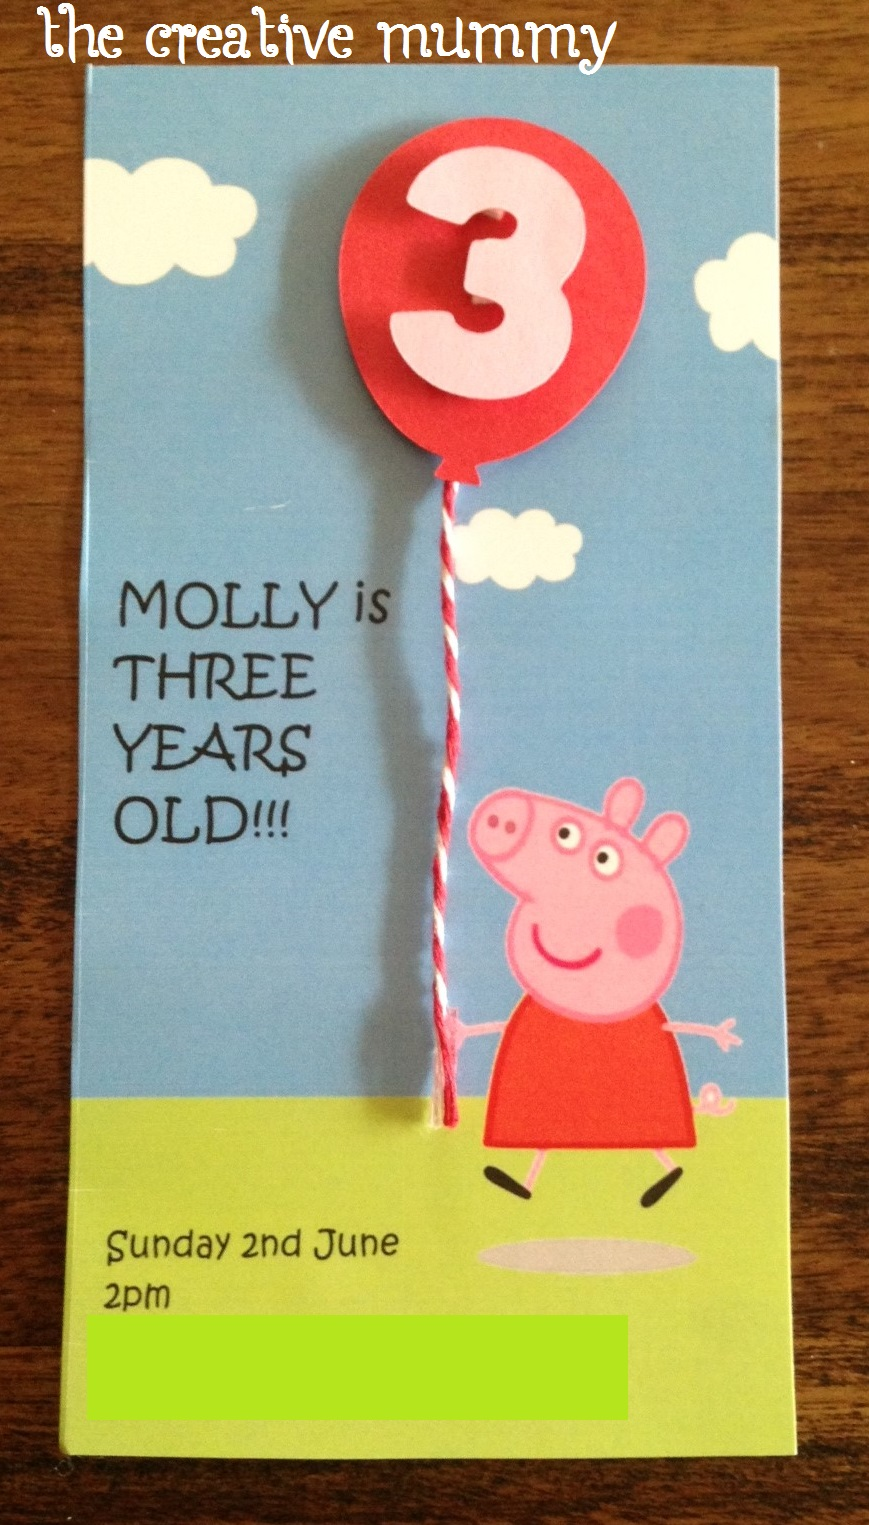 Mollys Peppa Pig Party